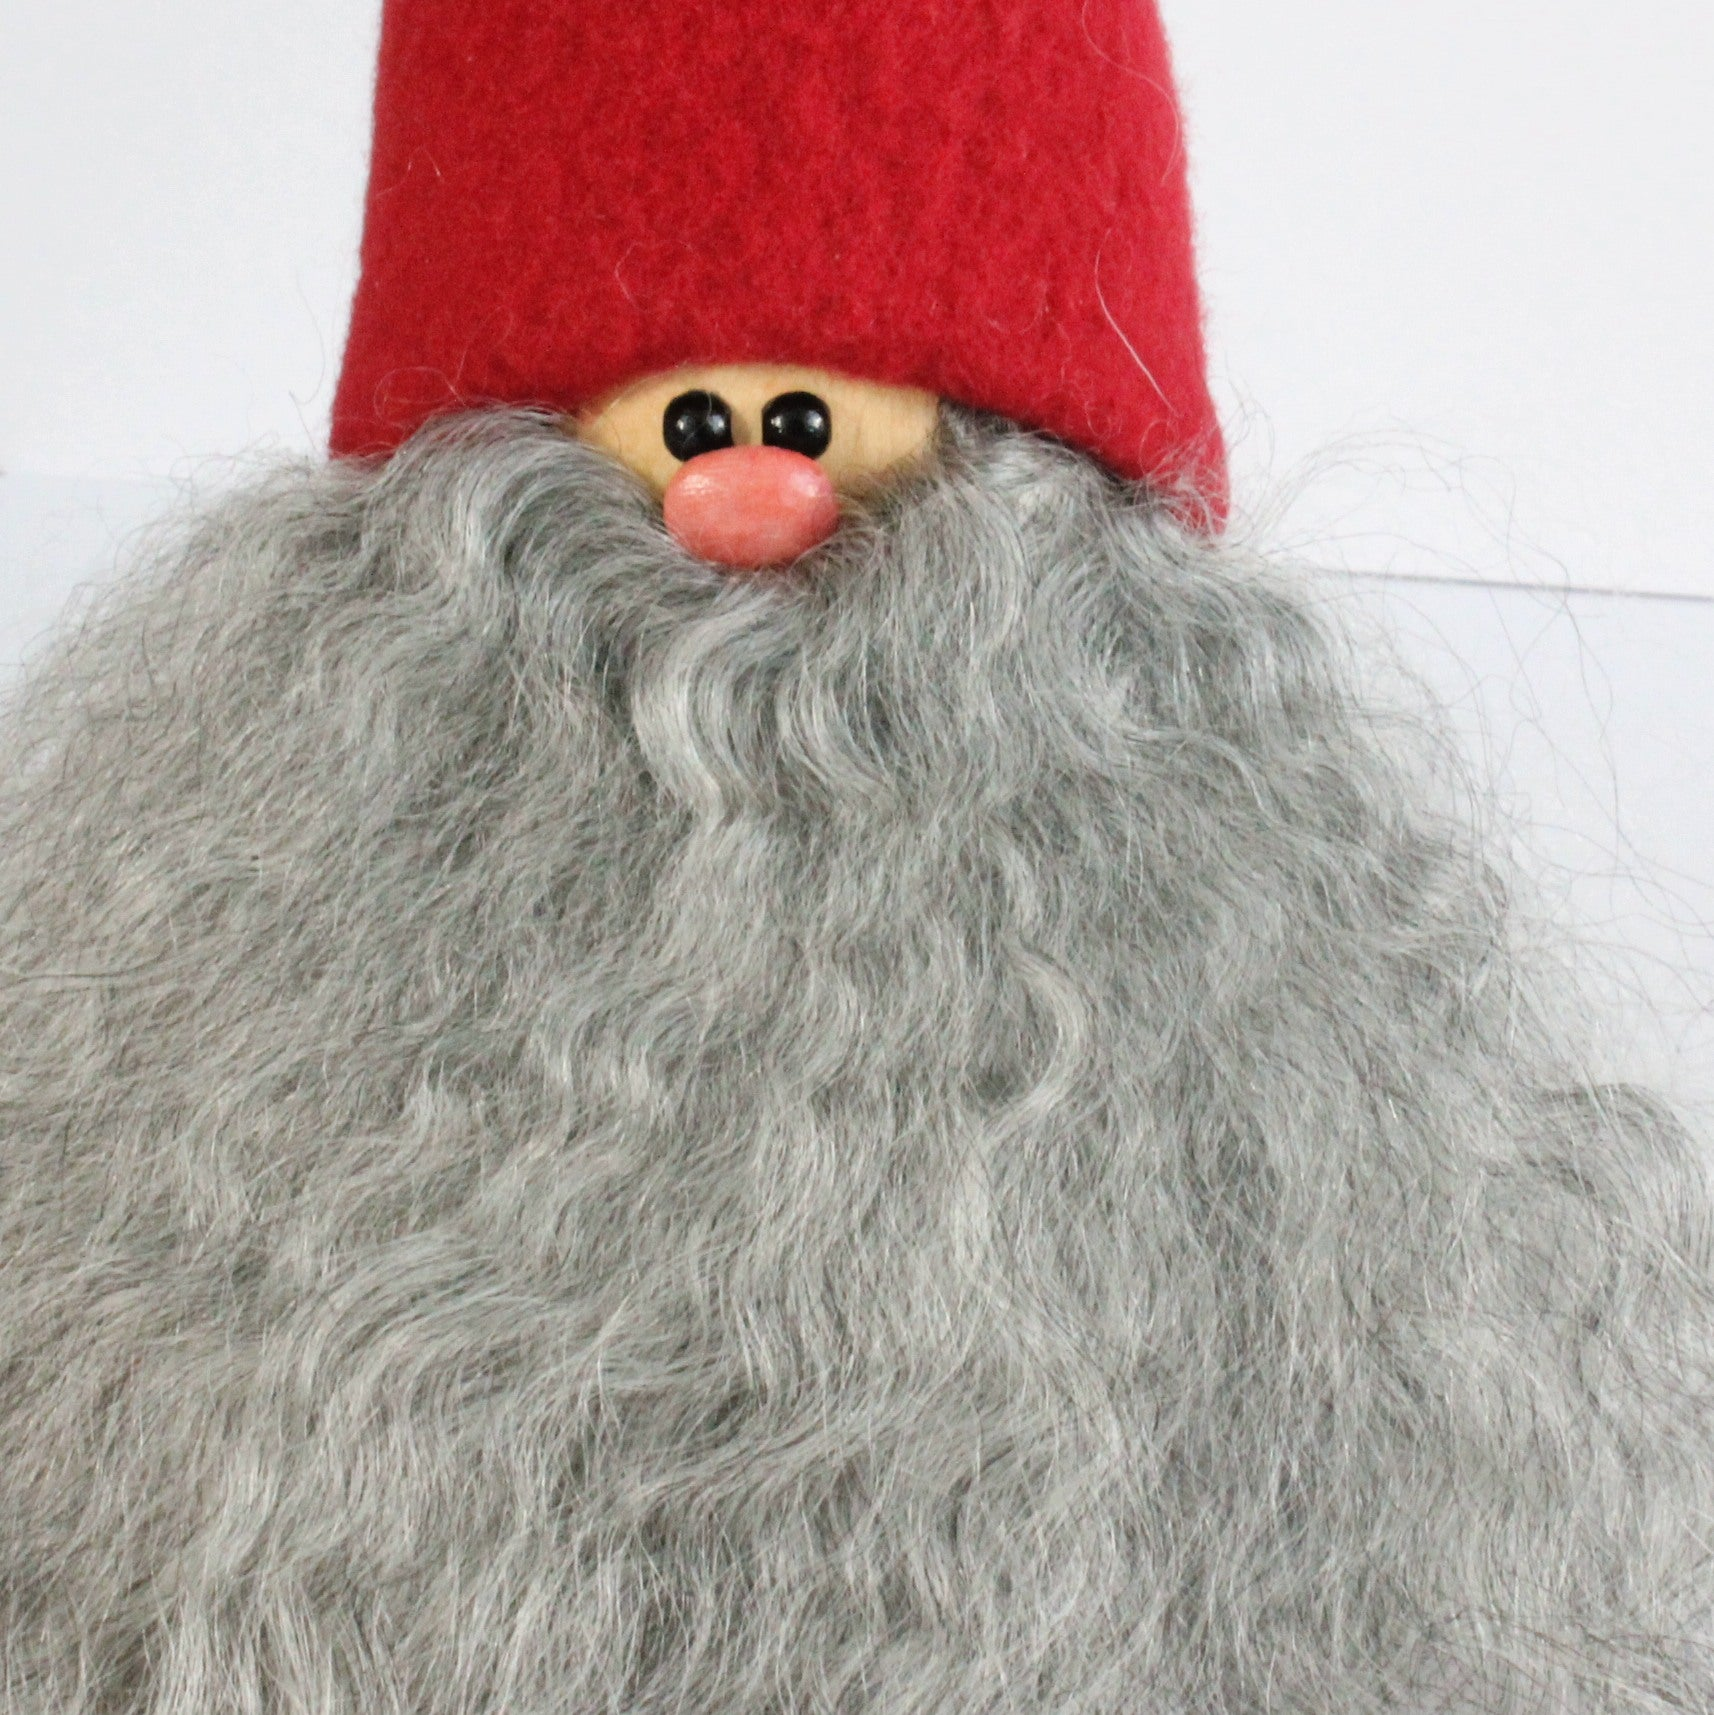 Handmade Santa, red cap, curly grey beard, sheepskin